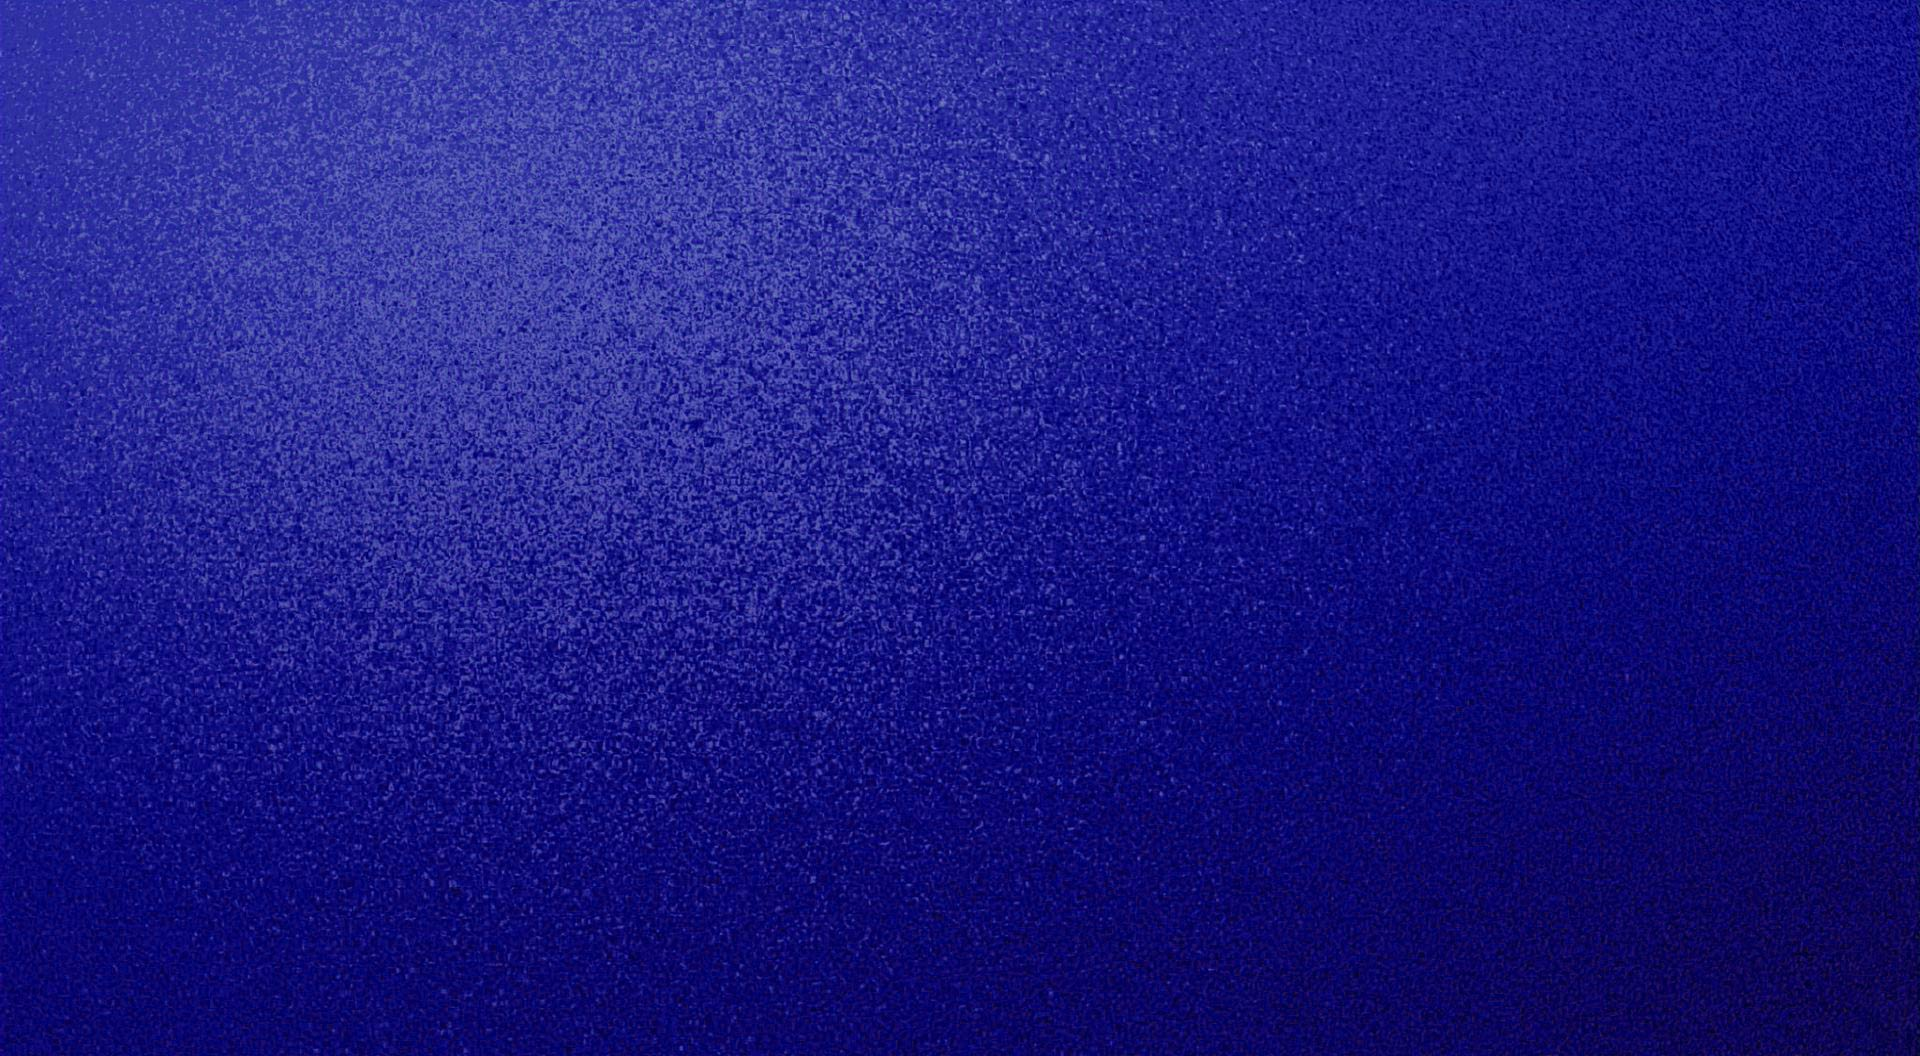 Dark blueroyal blue textured speckled desktop background wallpaper 1920x1056